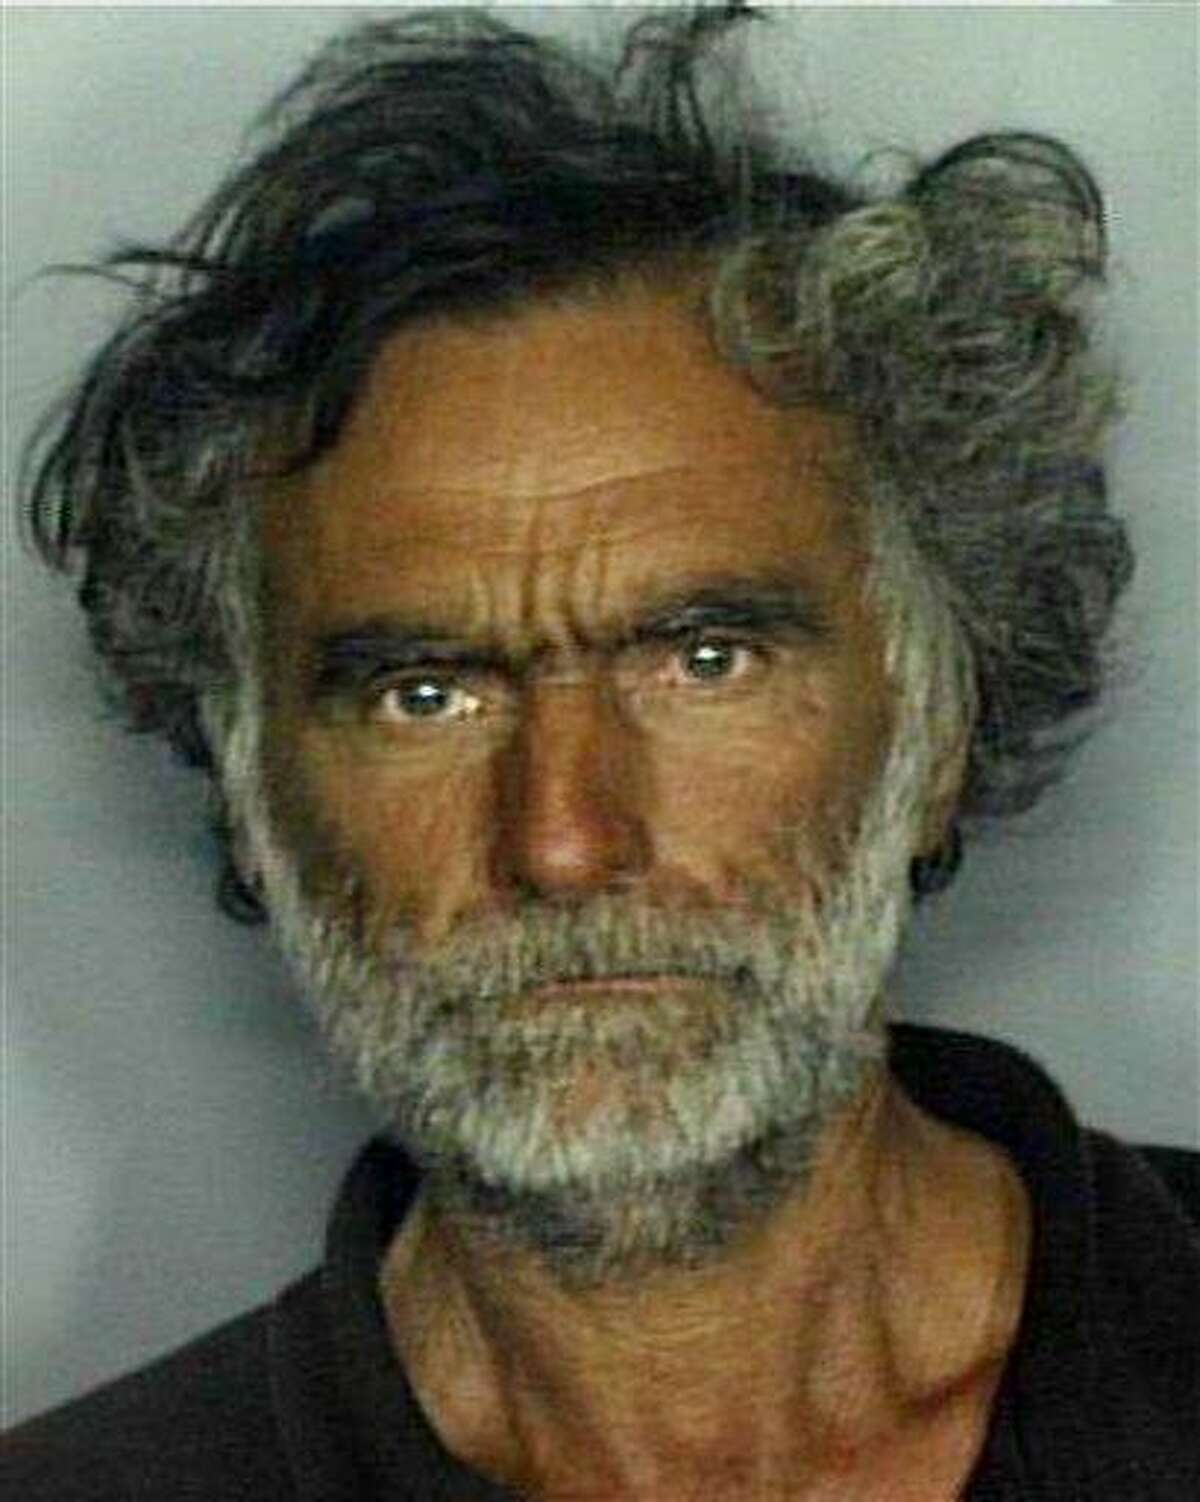 This undated booking file photo made available by the Miami-Dade Police Dept. shows Ronald Poppo. In a recorded July 19 interview, Ronald Poppo told investigators the man who approached him initially seemed friendly. But Poppo said Rudy Eugene then